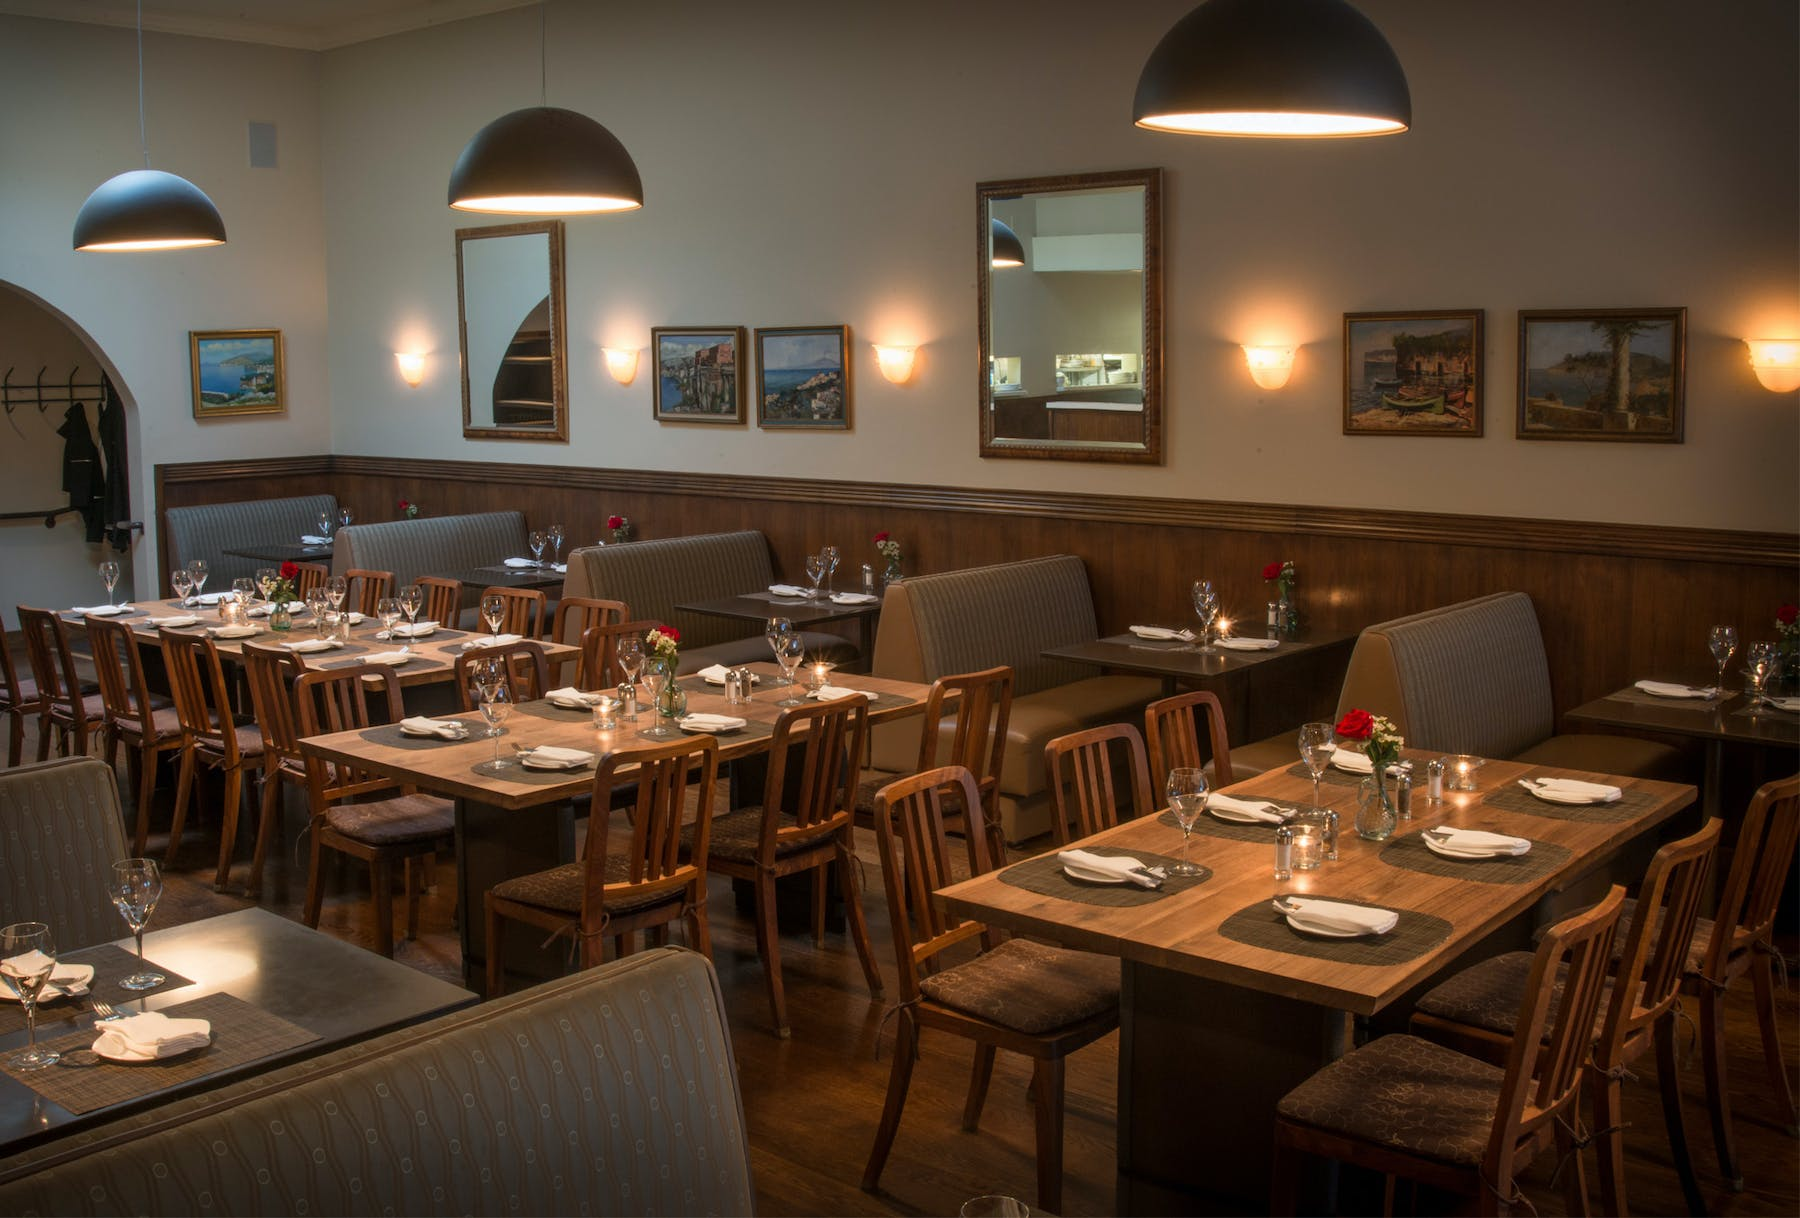 the La Ginestra dining room